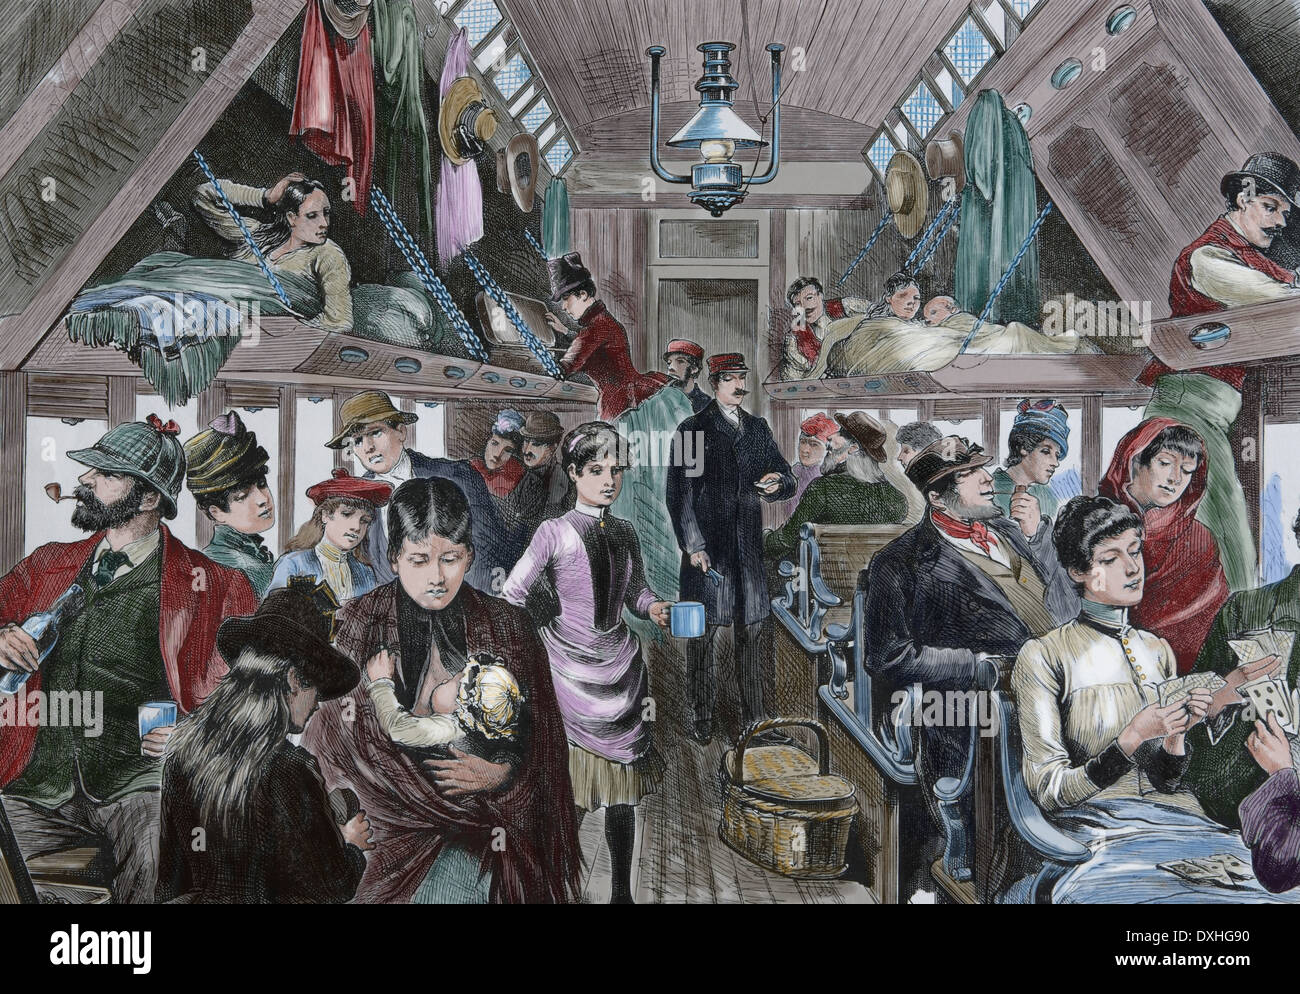 Old railroad car. Waggon with passengers. 19th century. Engraving (later colouration). - Stock Image